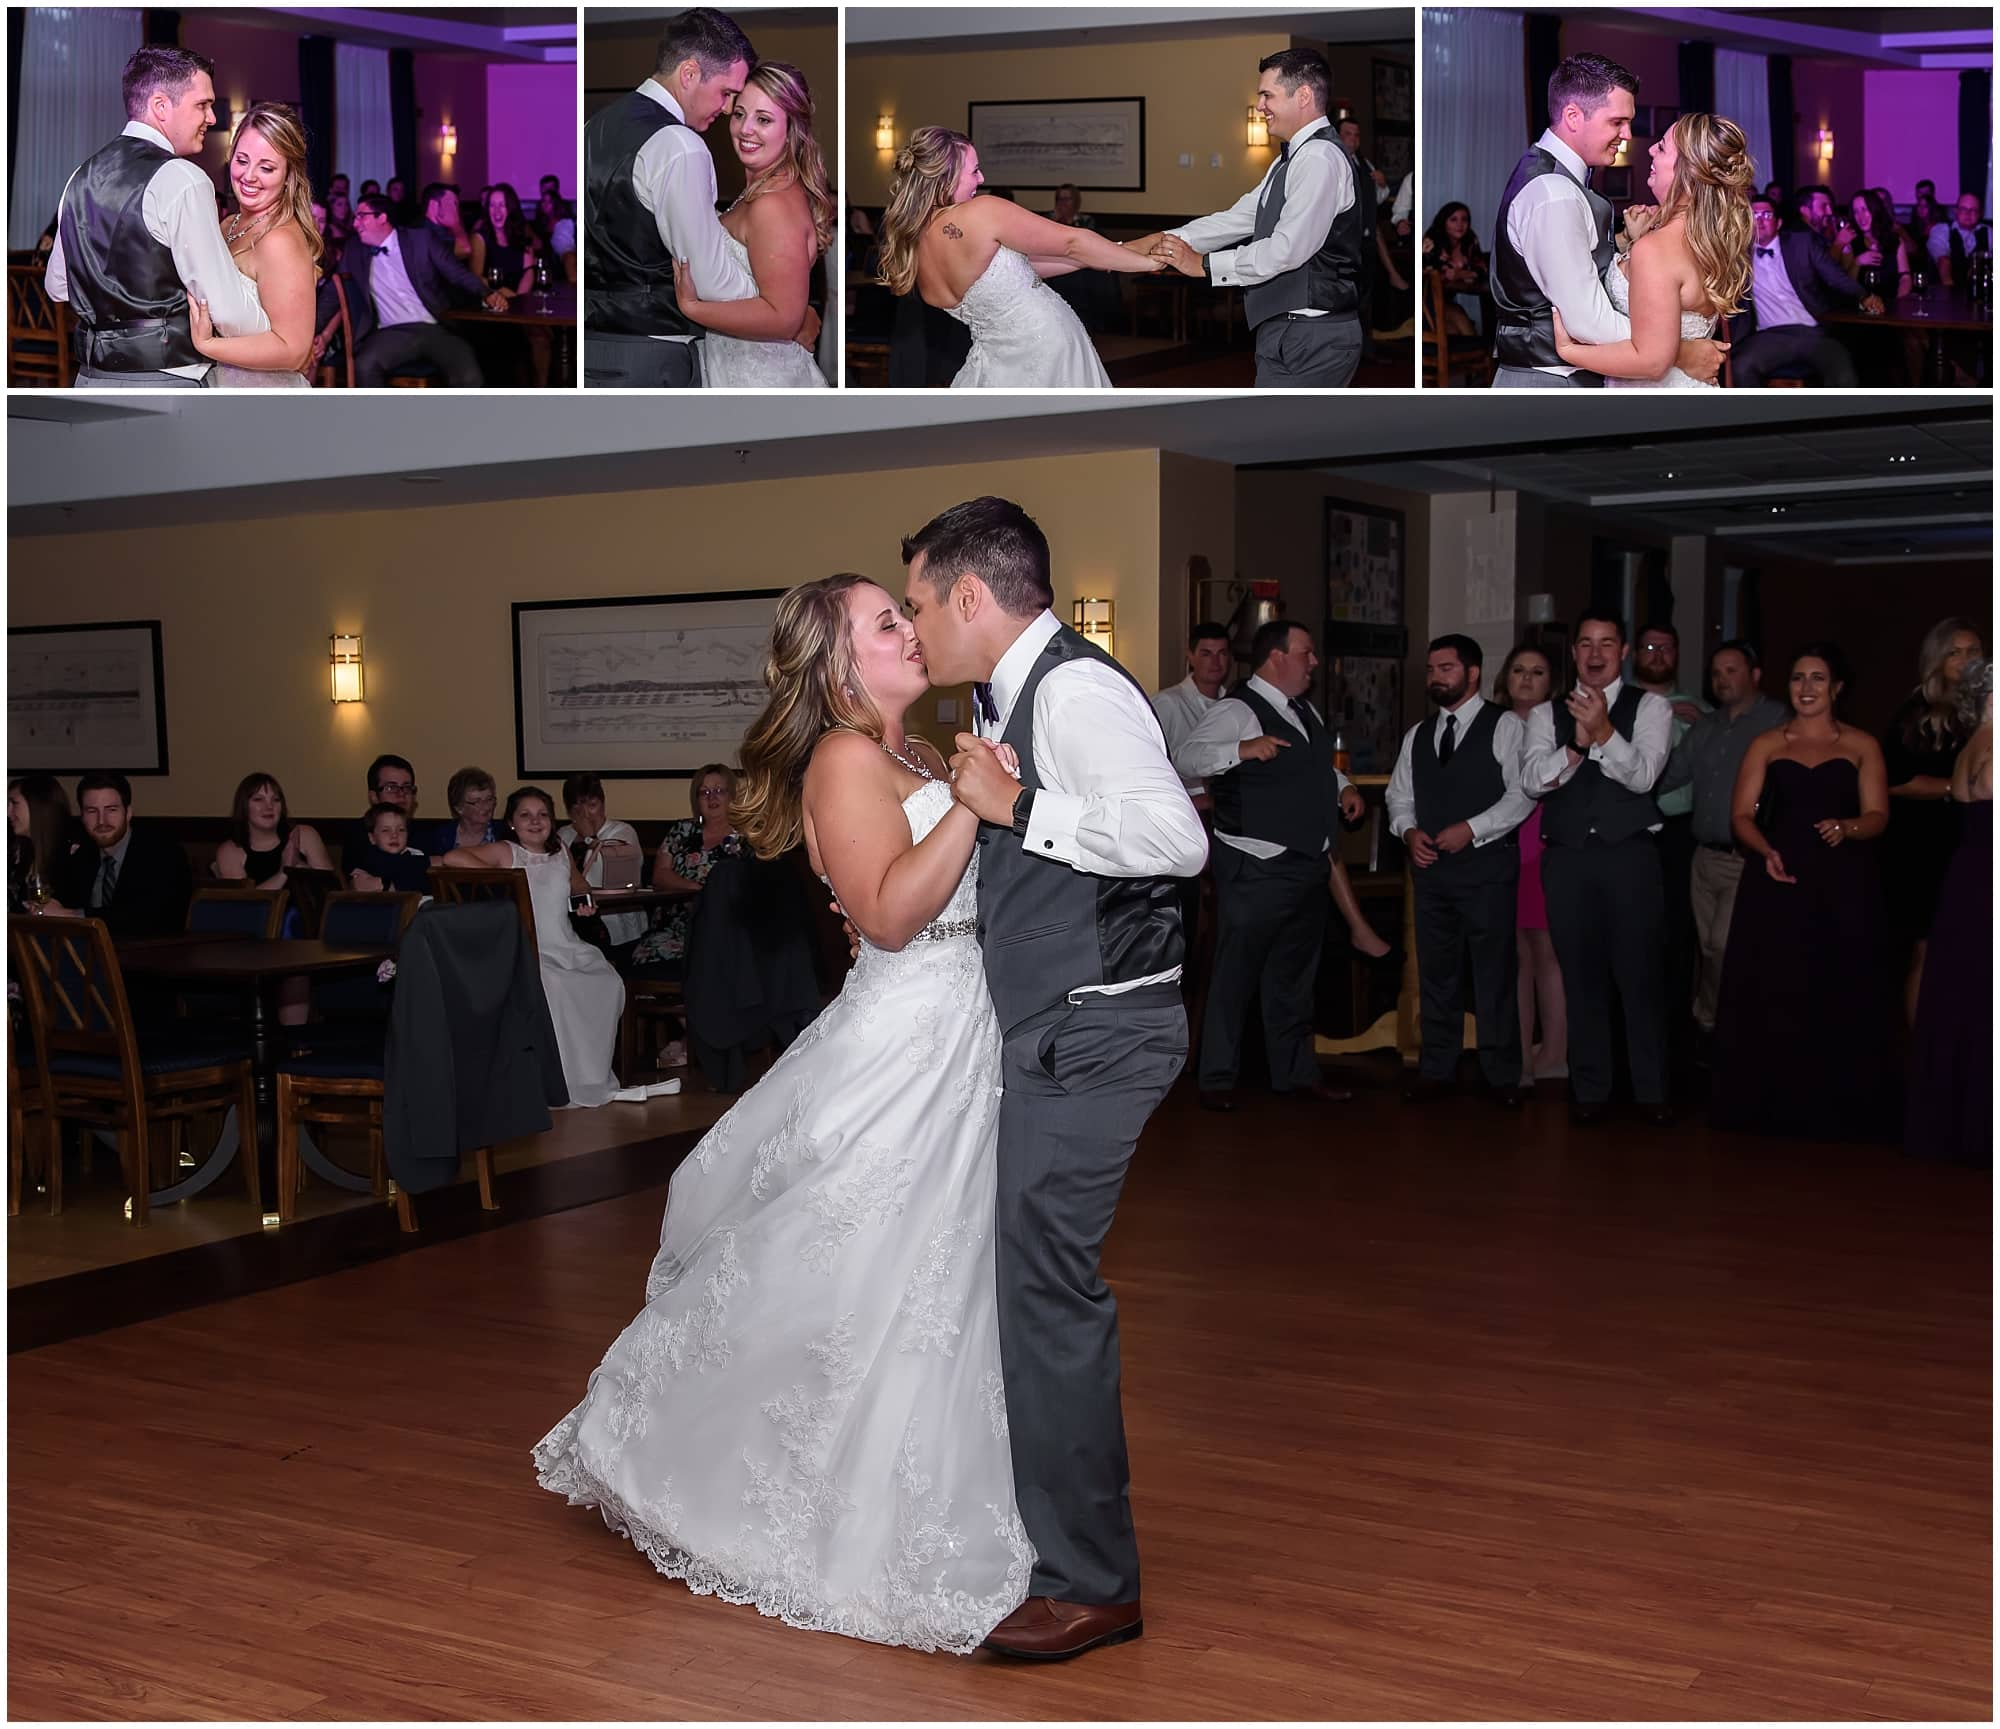 The bride and groom have their first dance during their wedding reception at Juno Tower in Halifax, NS.